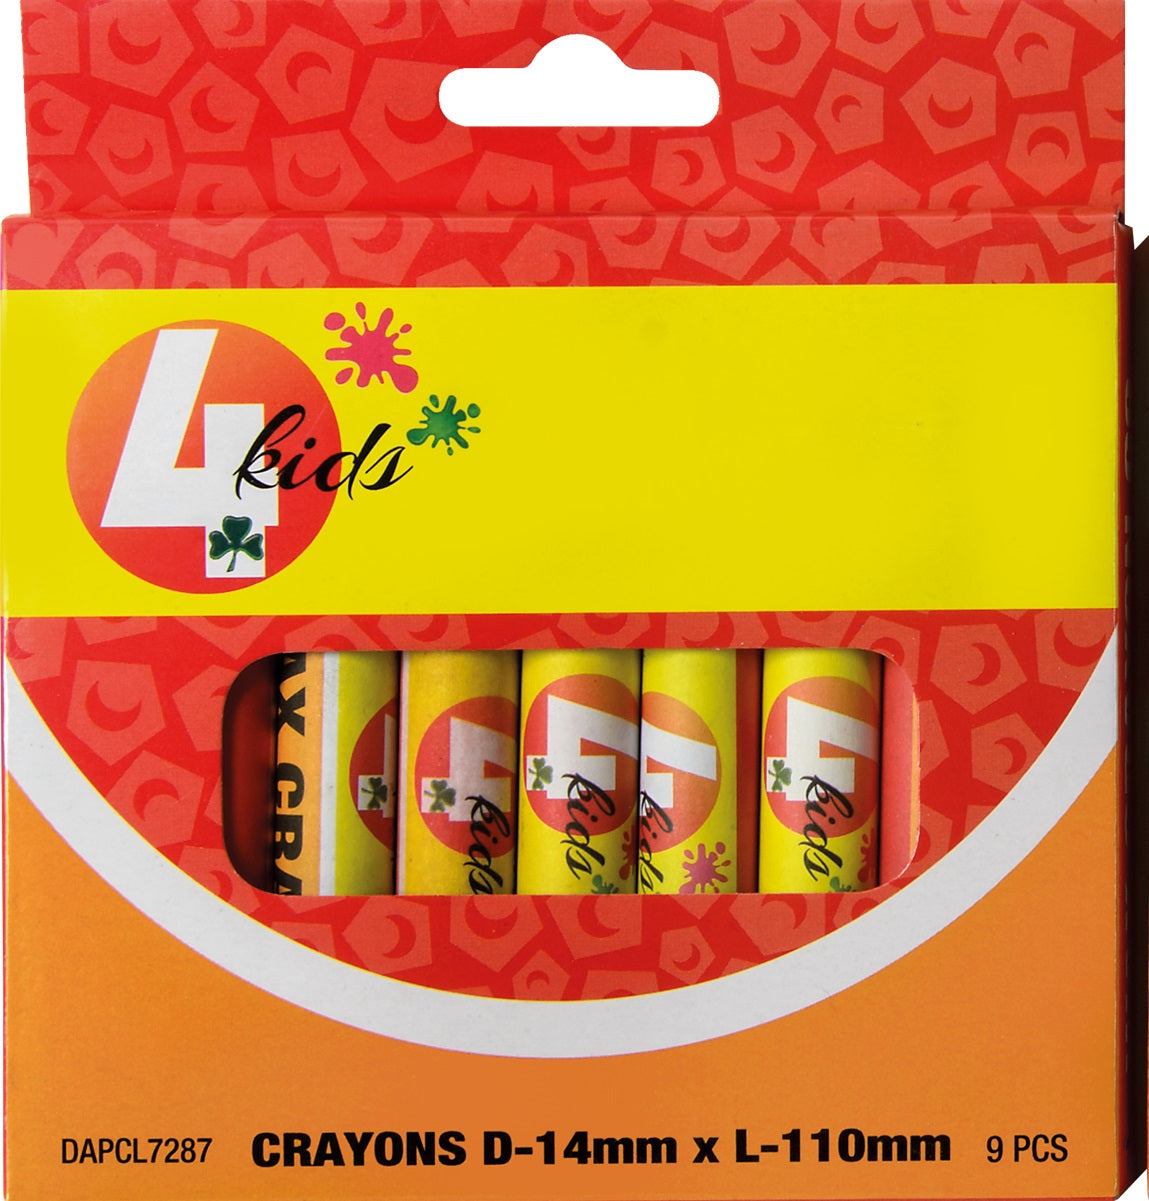 Crayons - Wax 14mm - 9's - 4kids